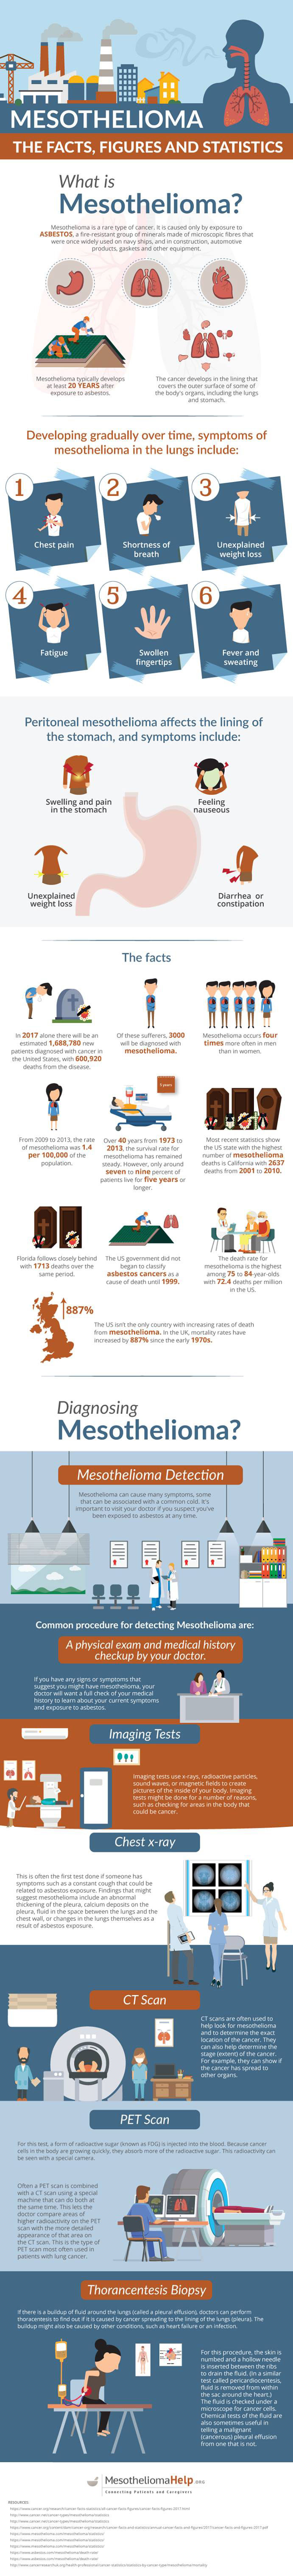 Mesothelioma-Infographic-Health-Communication-CDC-Therapy-Asbestos-Disease